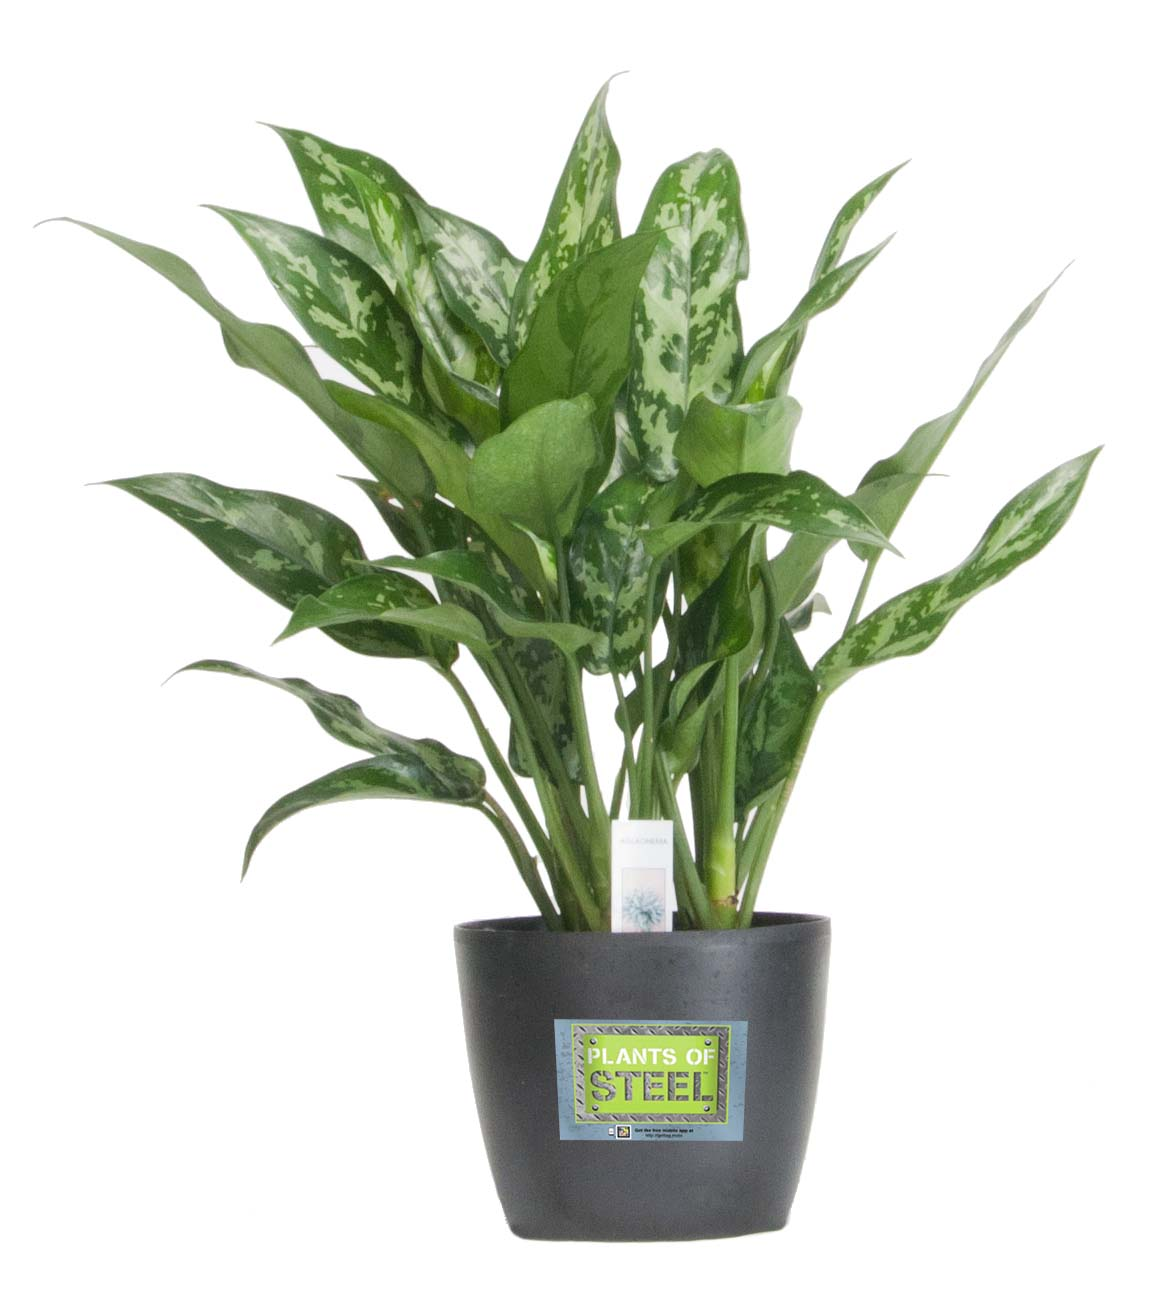 Best Kitchen Gallery: Costa Farms Introduces Durable Plants Of Steel Houseplant Collection of Tropical Foliage Houseplants on rachelxblog.com